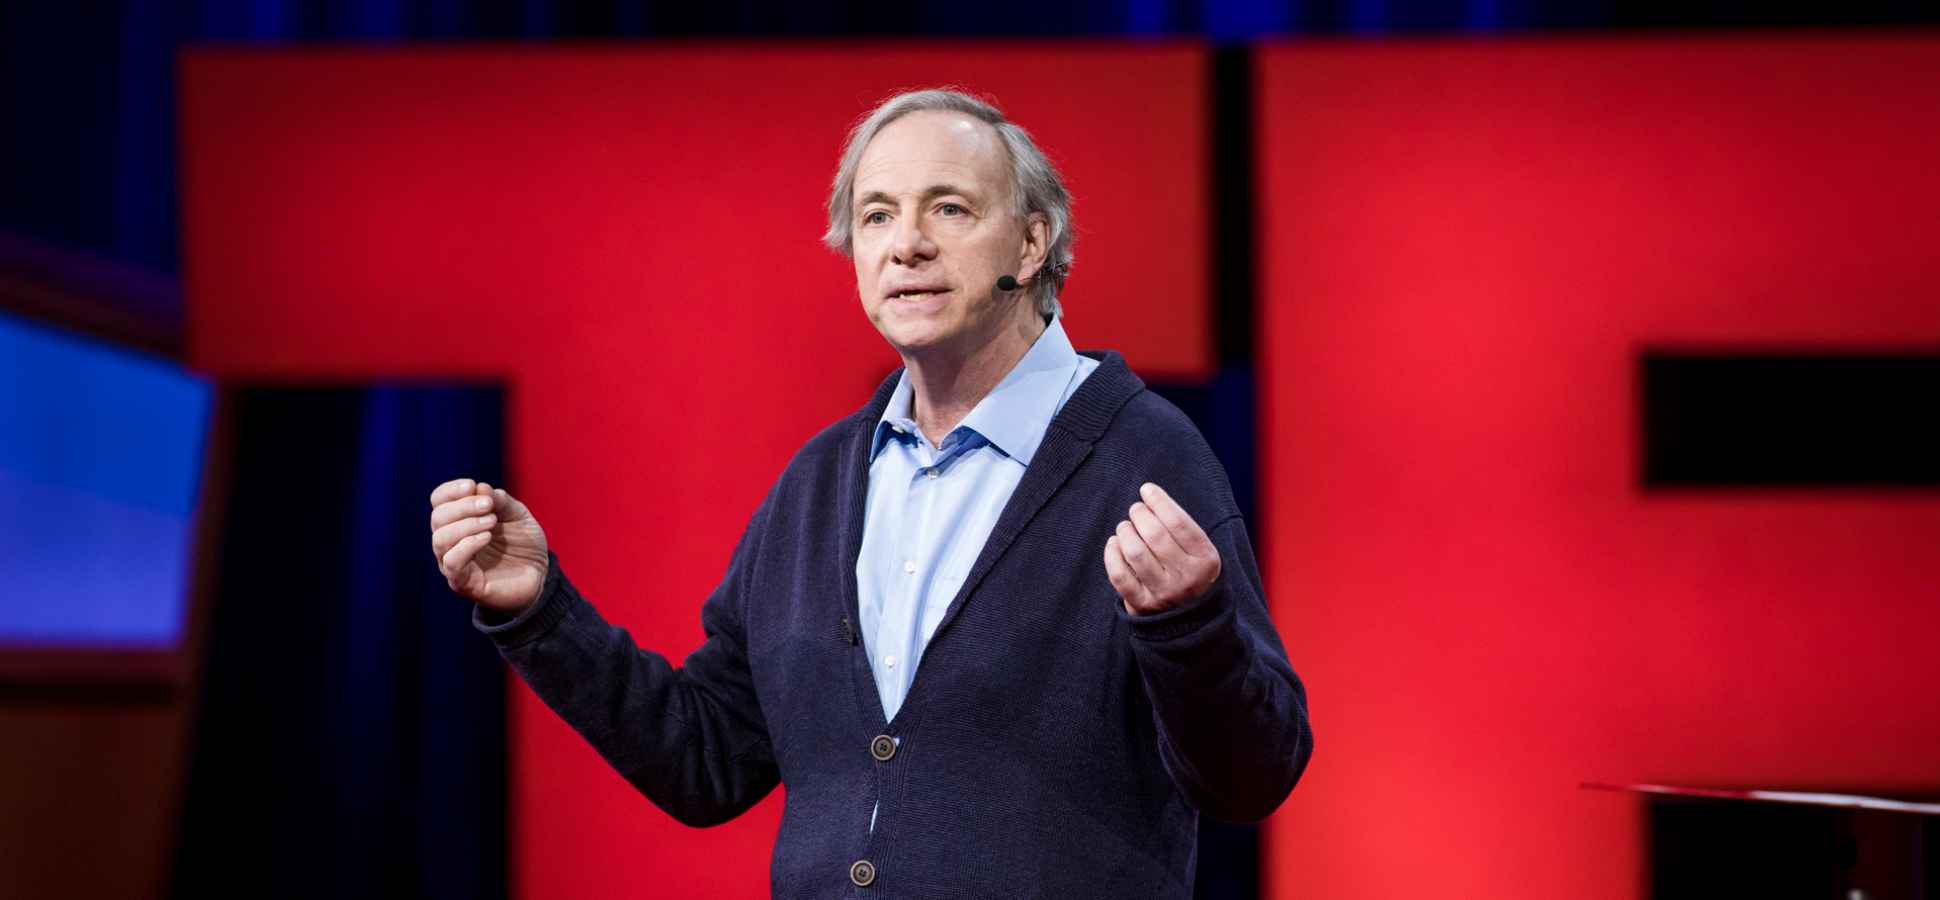 The Simple Shift in Mindset That Took This TED Speaker From Broke to Billionaire